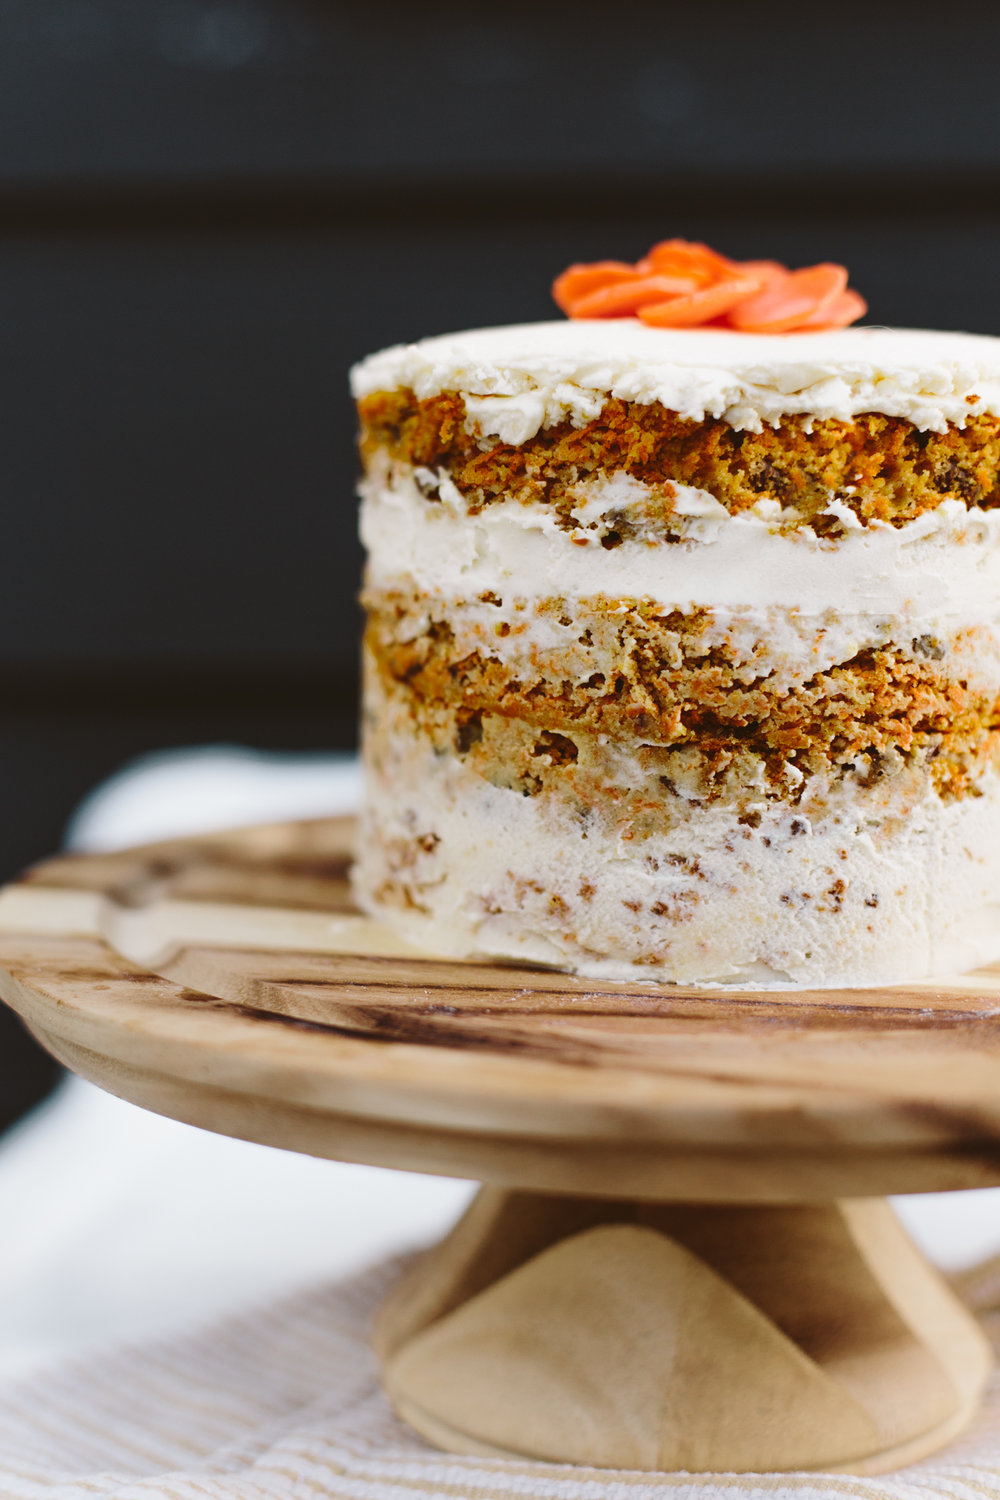 Keto Carrot Cake Recipe